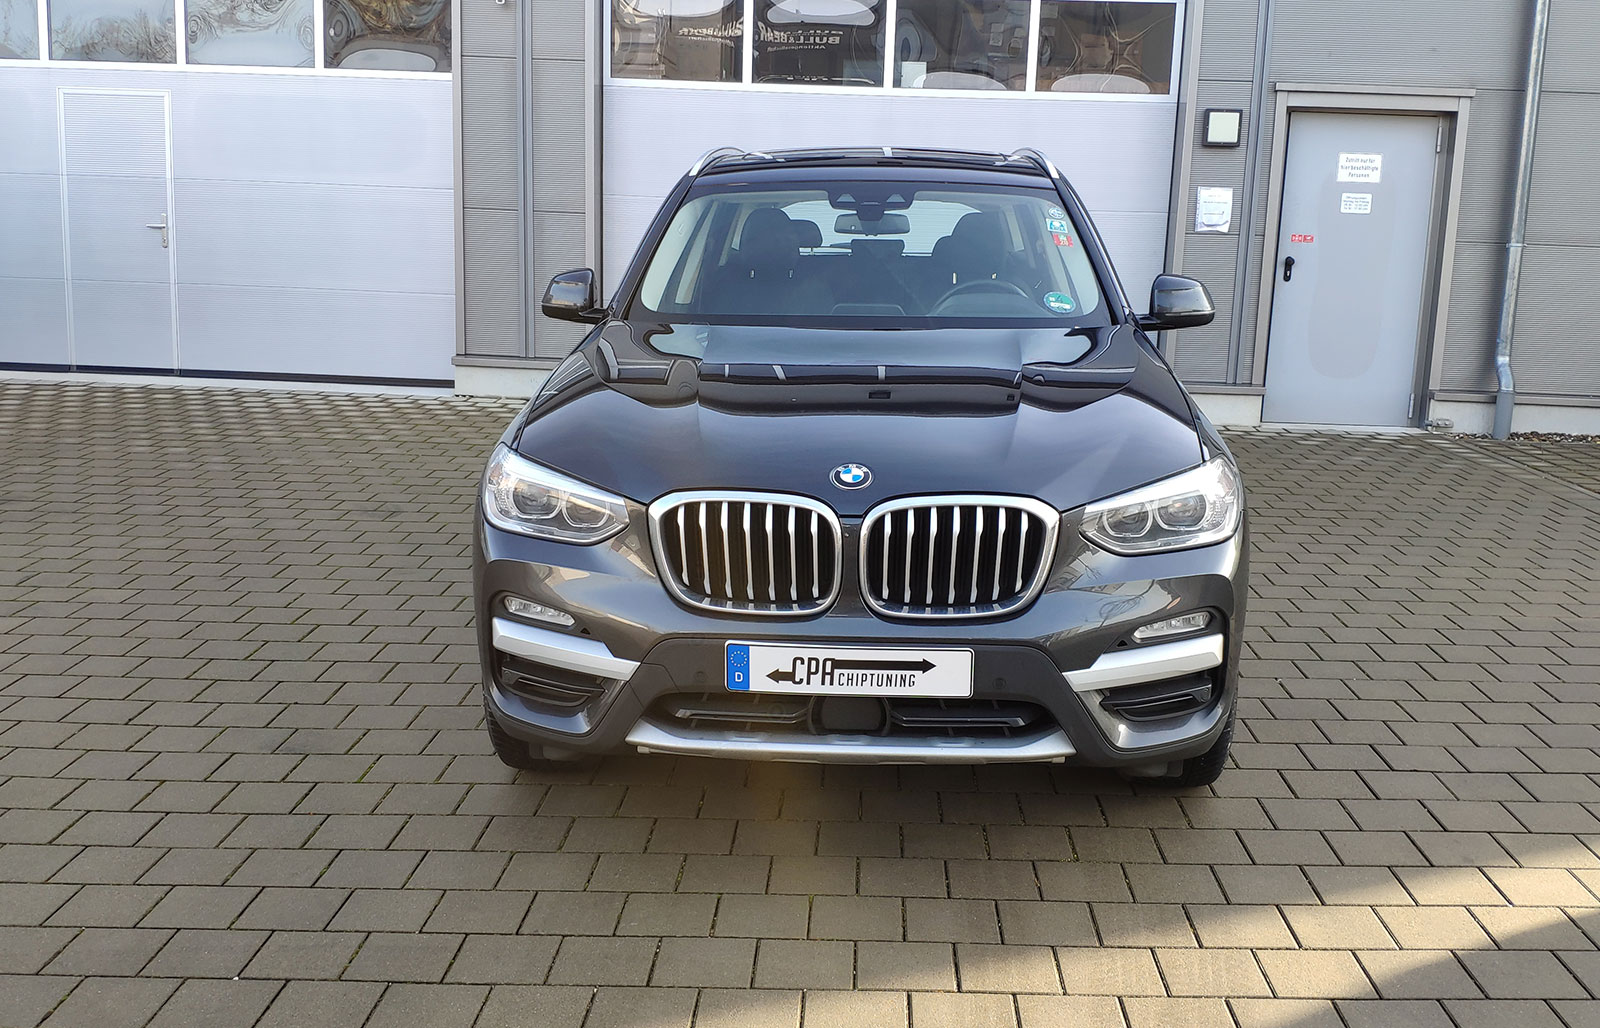 The BMW X3 (G01) xDrive20d测试中